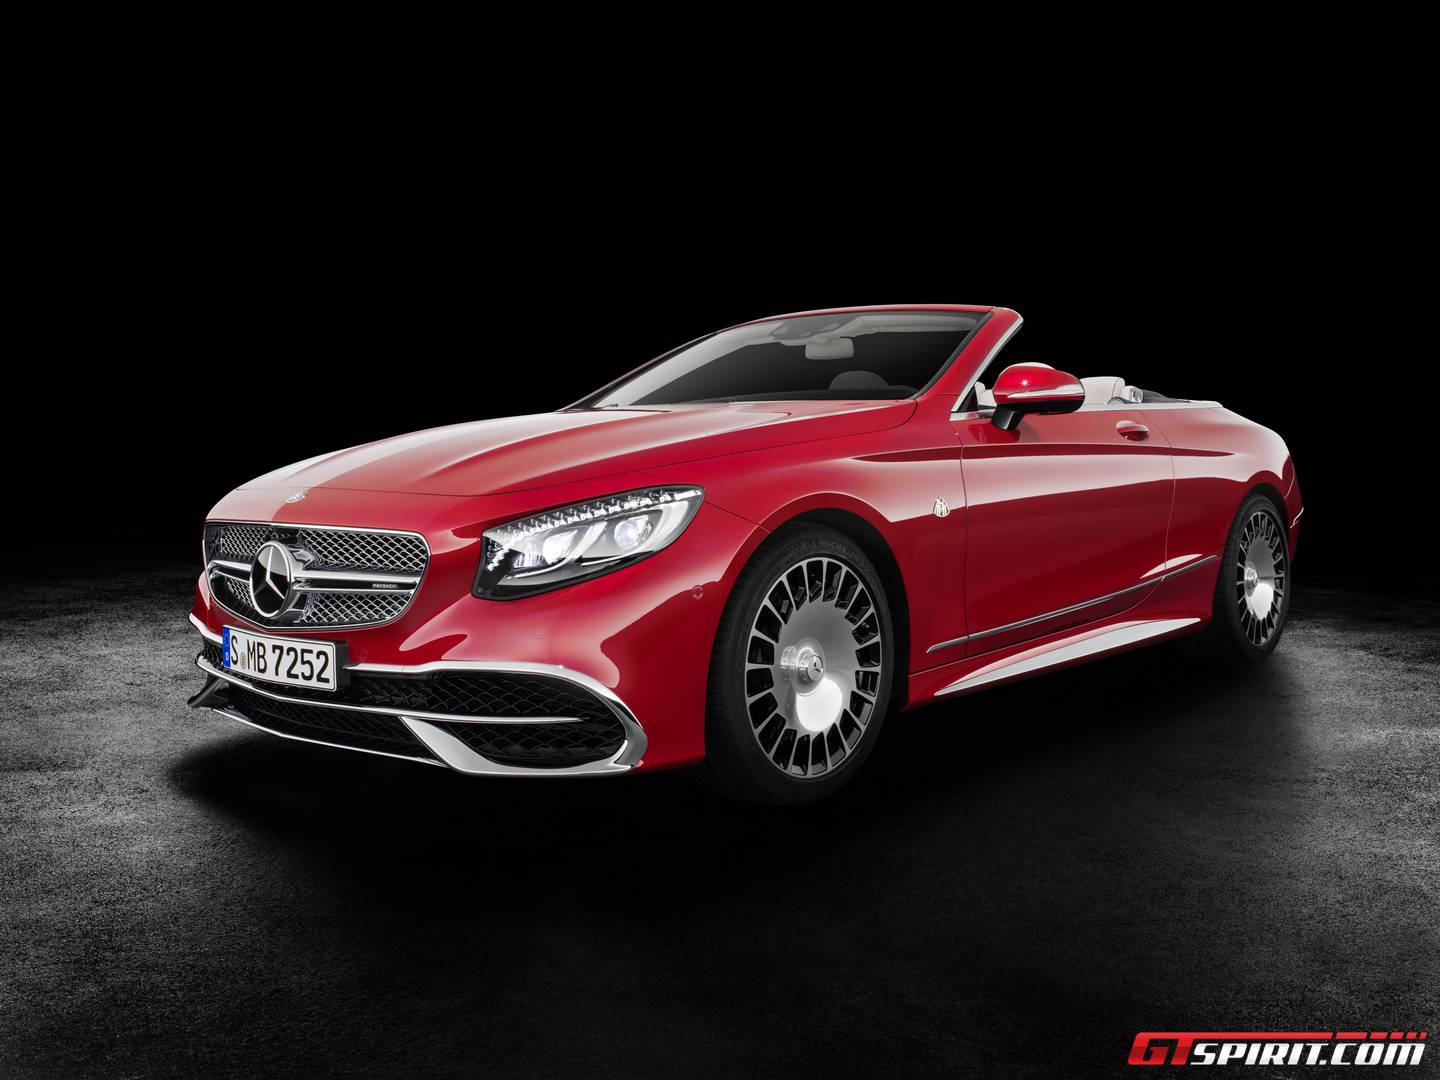 https://storage.googleapis.com/gtspirit/uploads/2016/11/Mercedes-Maybach-S650-Cabriolet-9.jpg